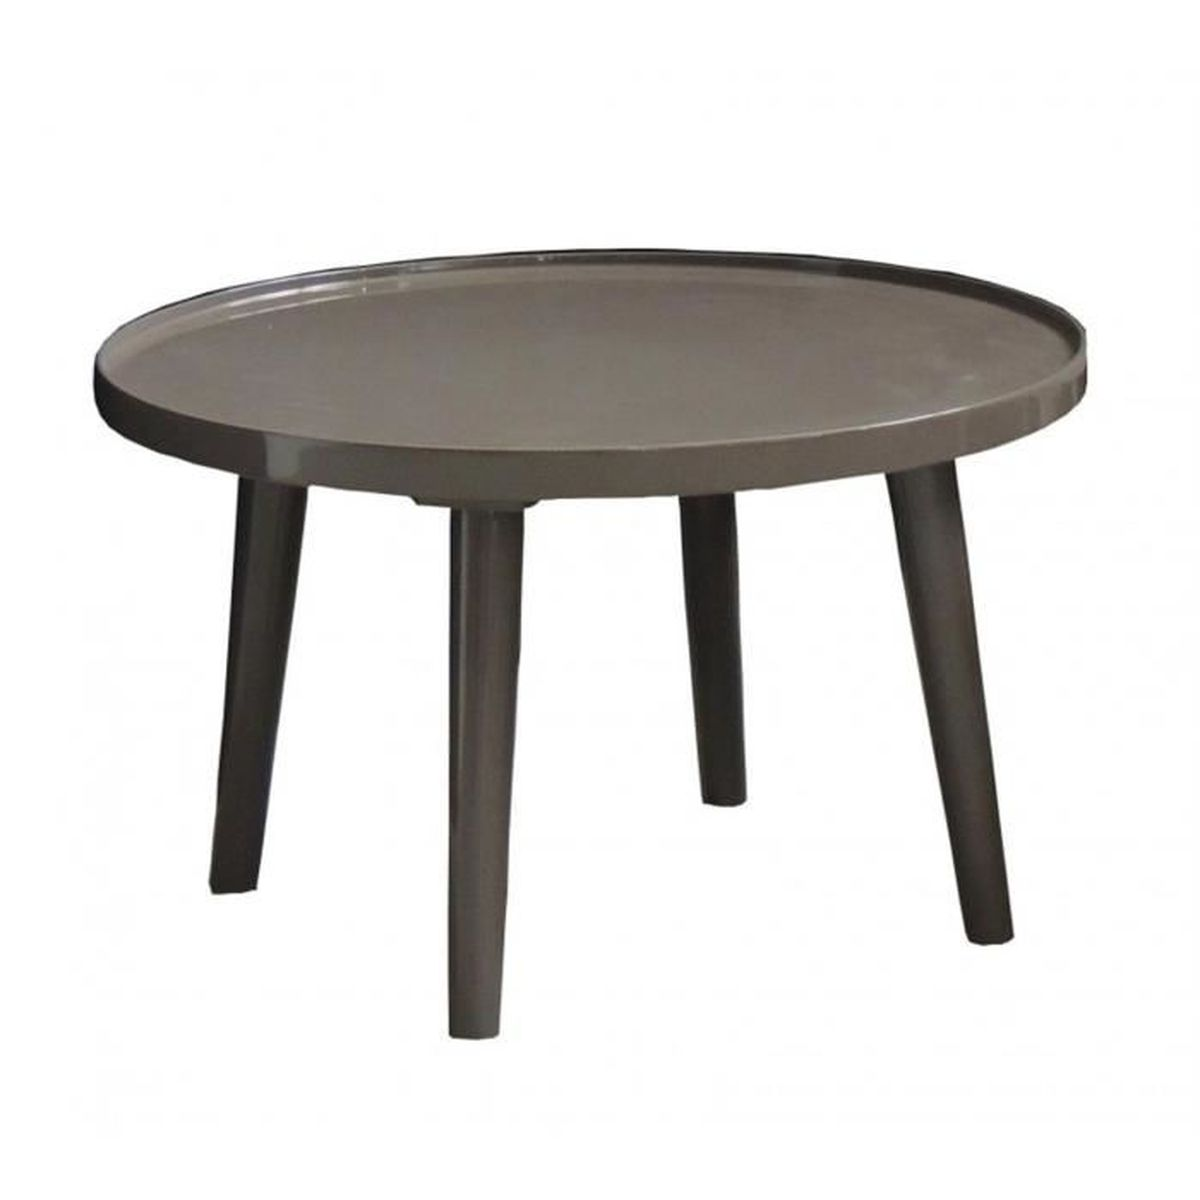 Table basse hauteur 50 interesting table basse hauteur cm for Table basse design hauteur 50 cm